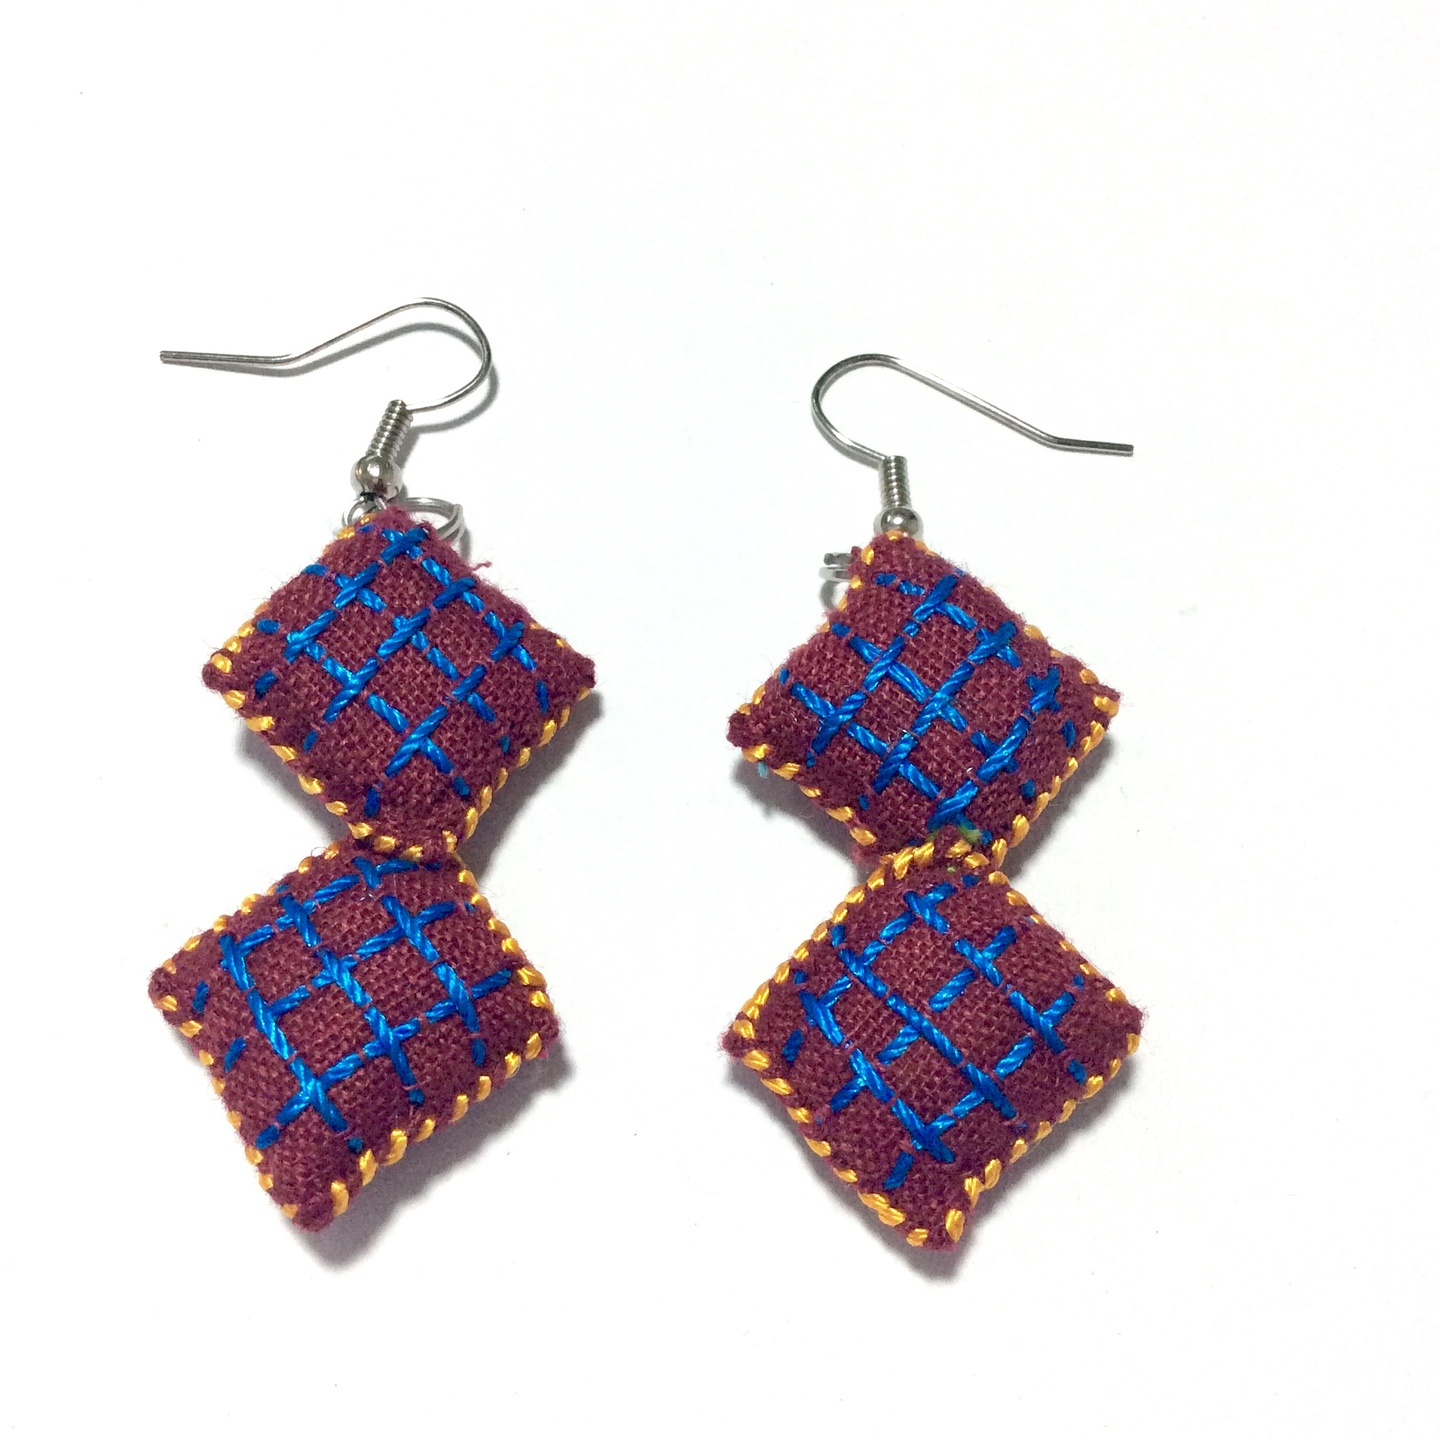 2 Blocks Fabric Embroidered Earrings